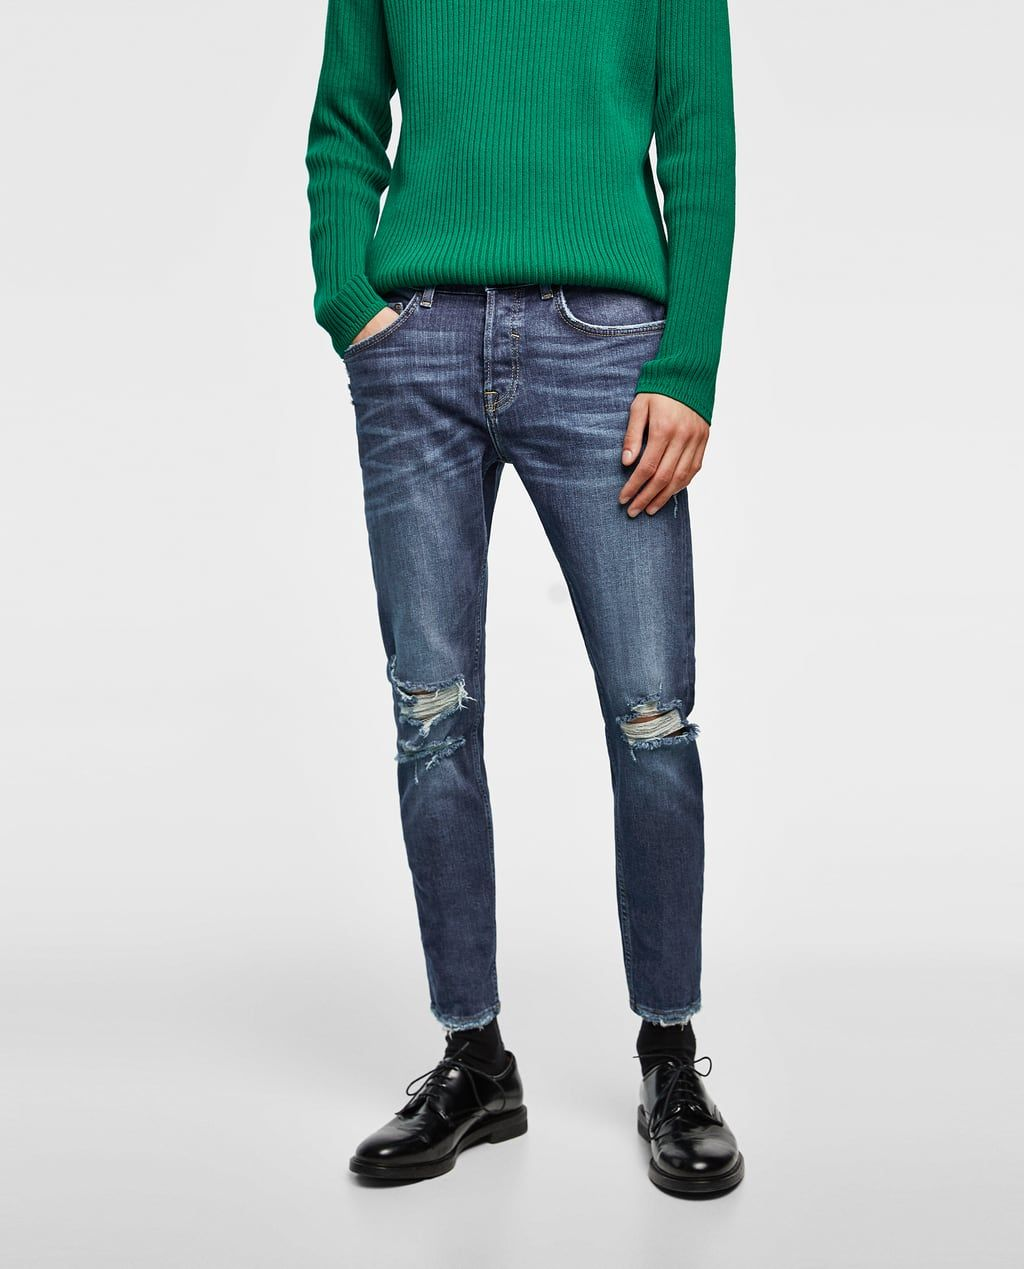 21a737cf8cd Men's Jeans | New Collection Online | ZARA United States Raw Edge, Skinny  Fit Jeans